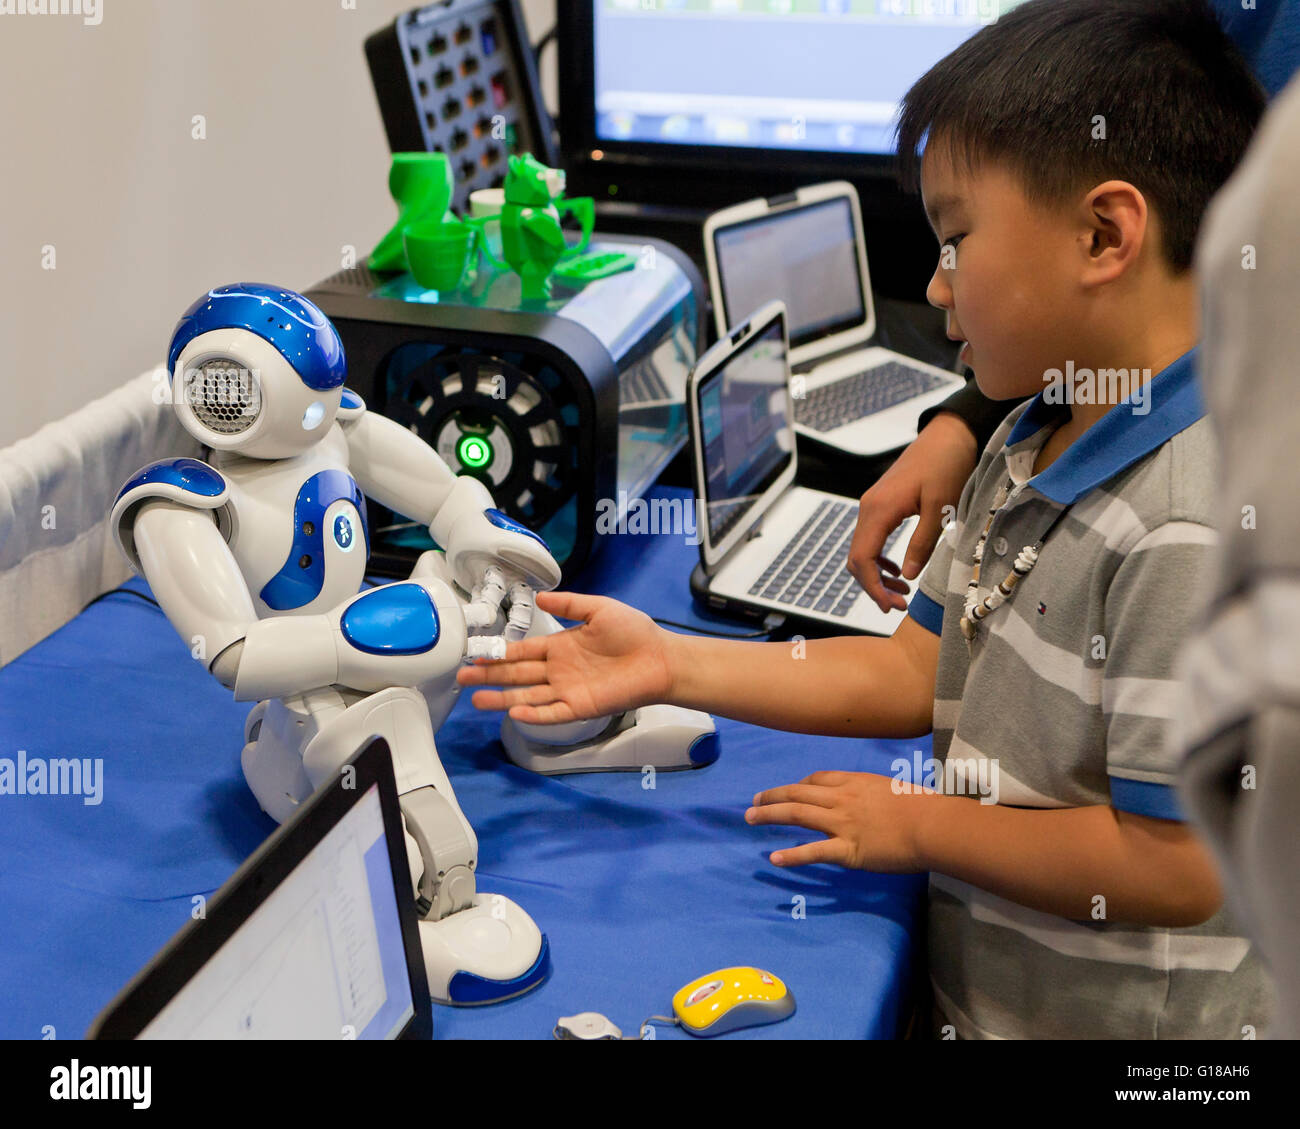 Child interacting with humanoid robot at a science and engineering fair - USA - Stock Image